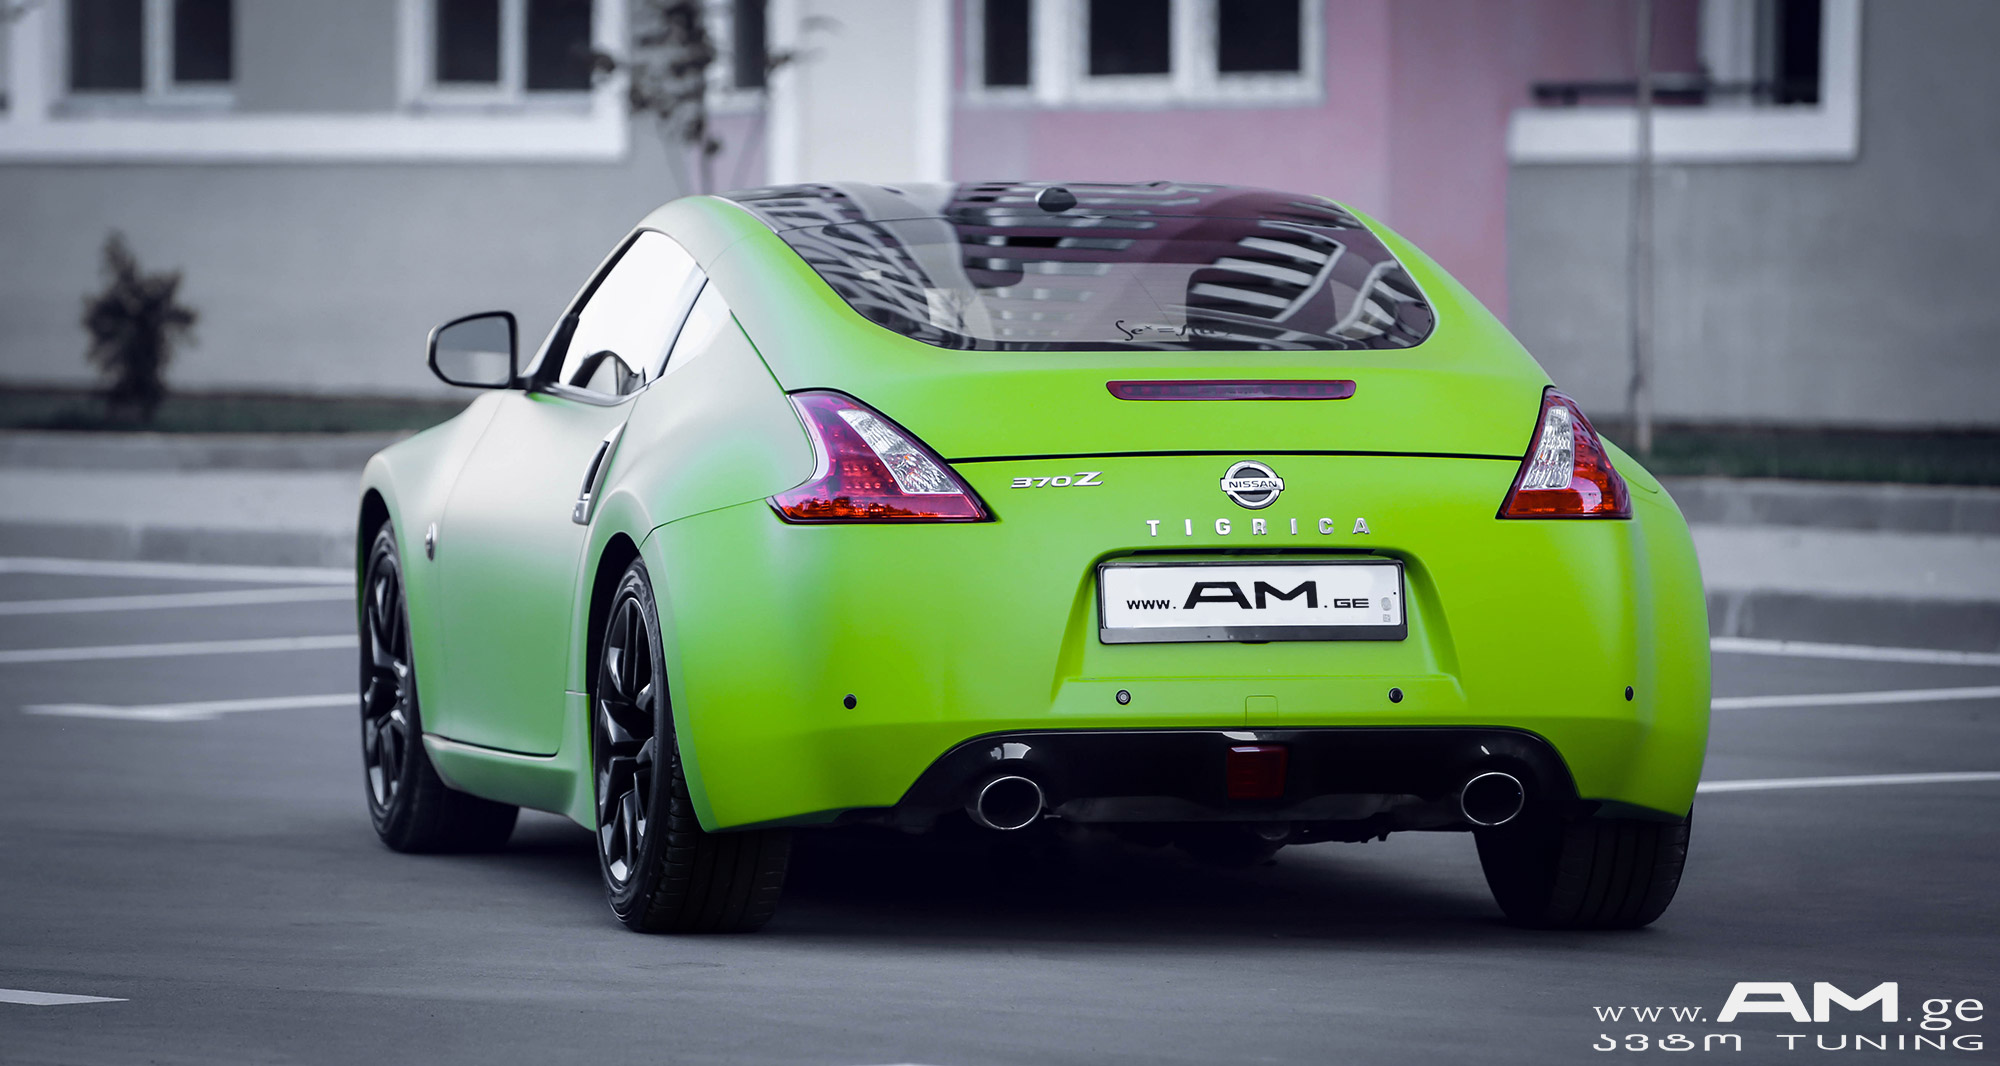 NISSAN Z370 GREEN | Interior Design | AUTO AM GE